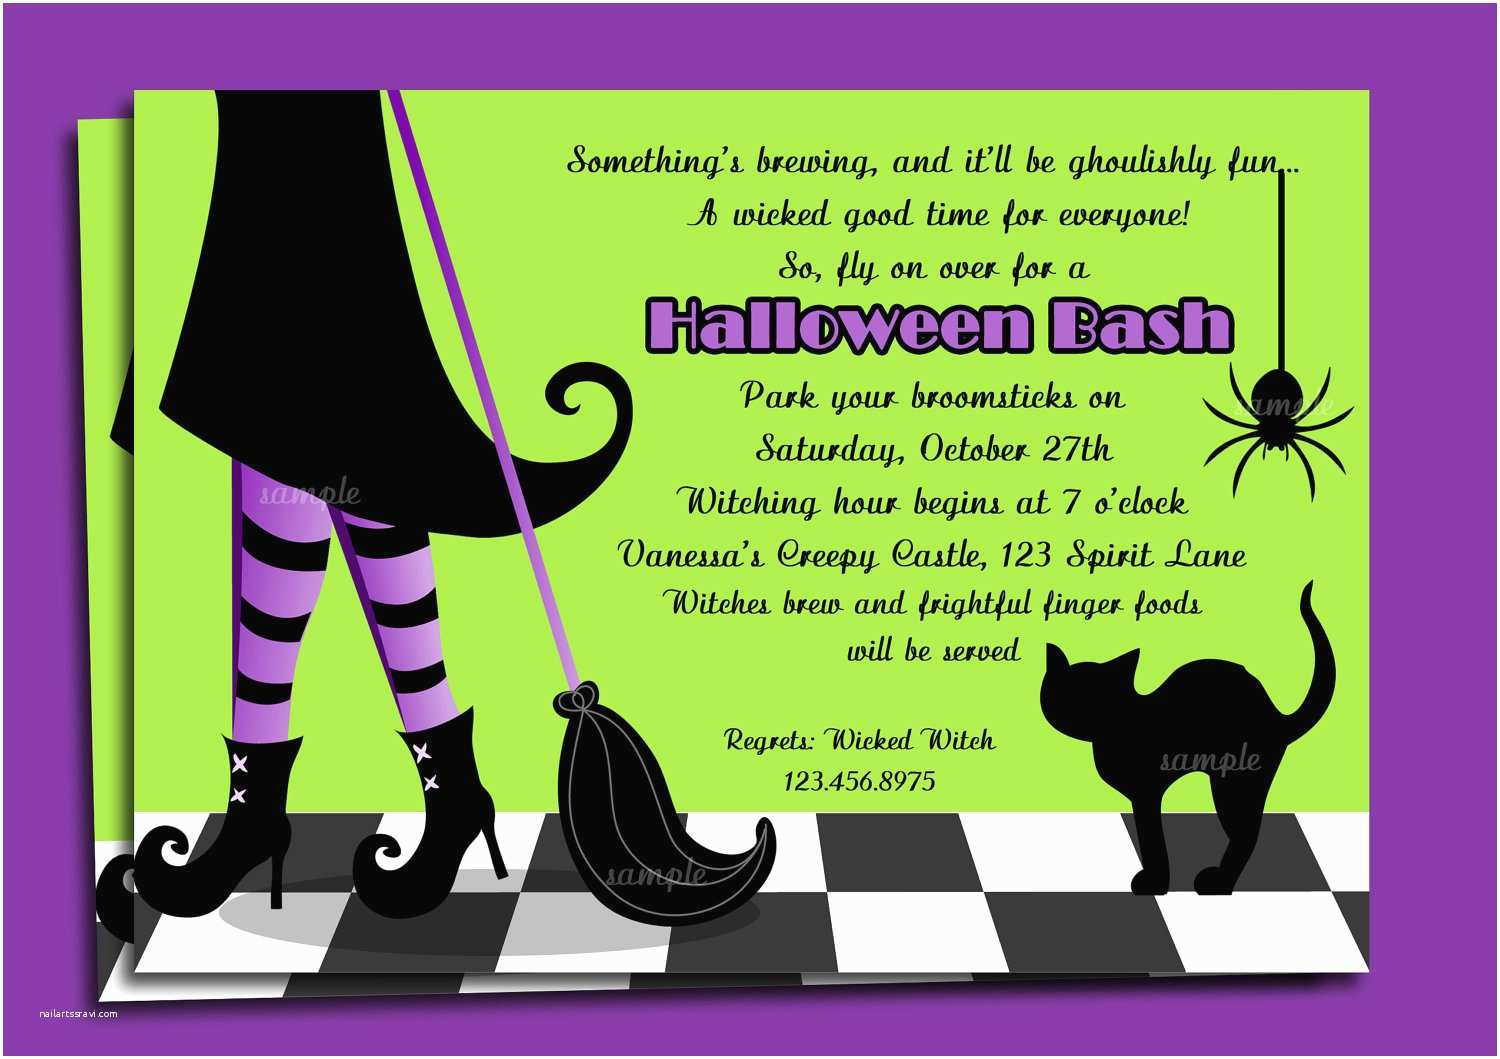 Costume Party Invitations Halloween Party Invitation Wording